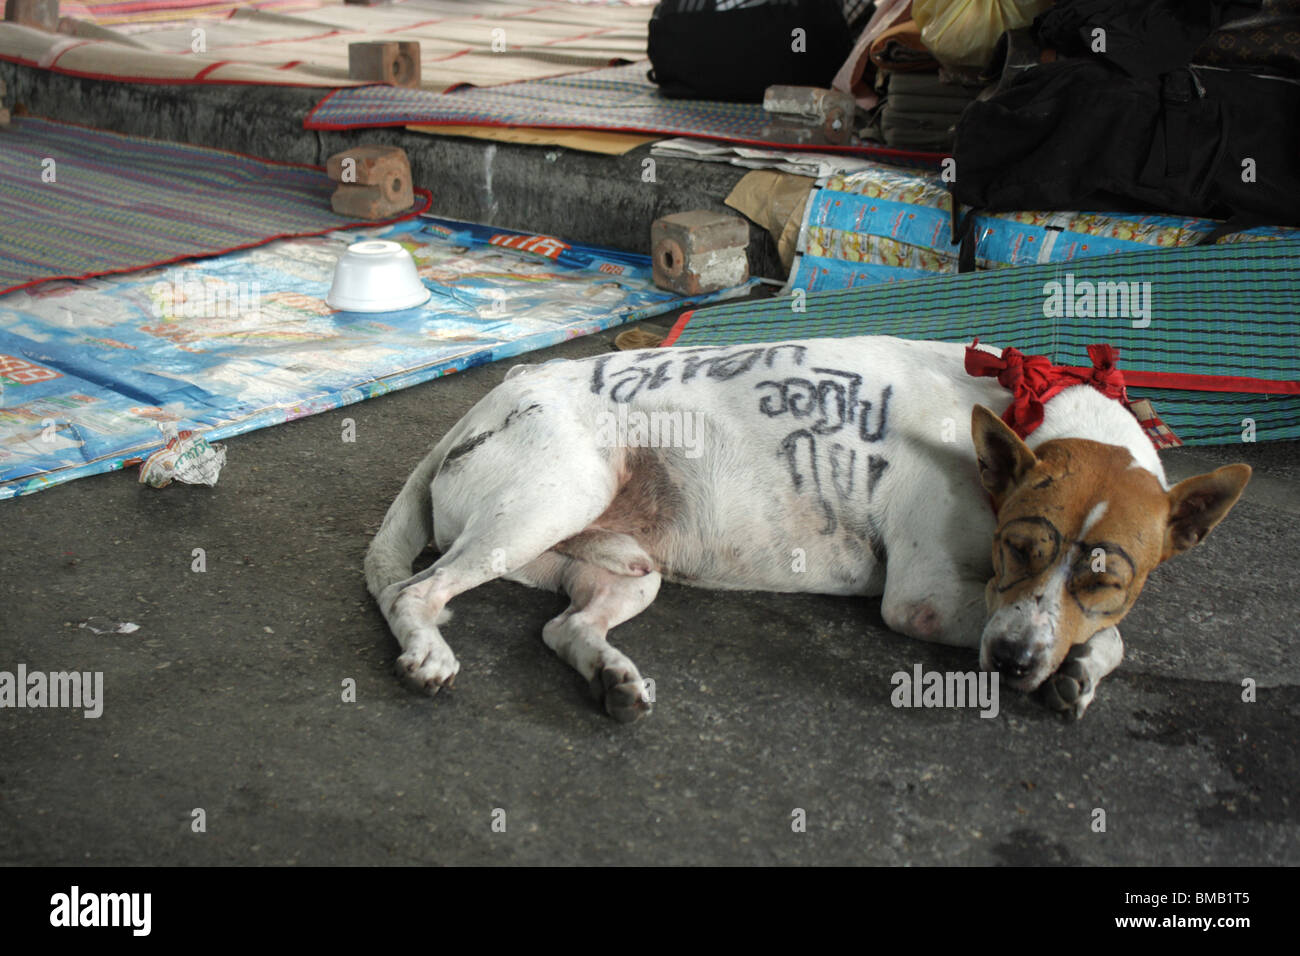 A dog during an anti-government protest at central world junction in Bangkok - Stock Image